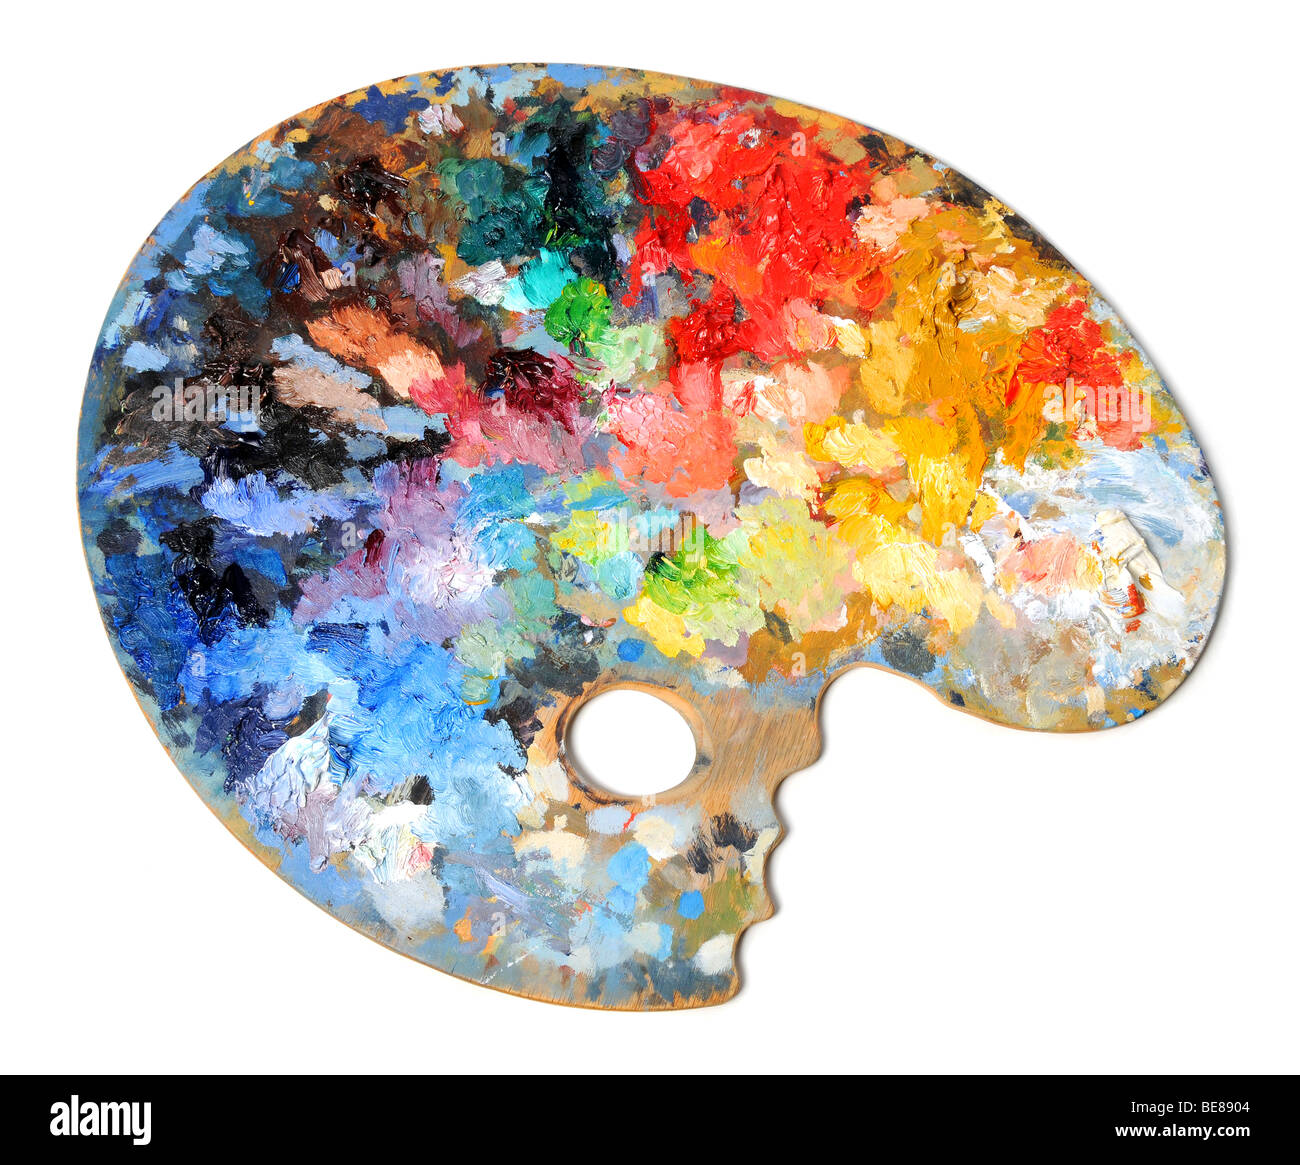 Artist palette with different colors isolated over white background - Stock Image